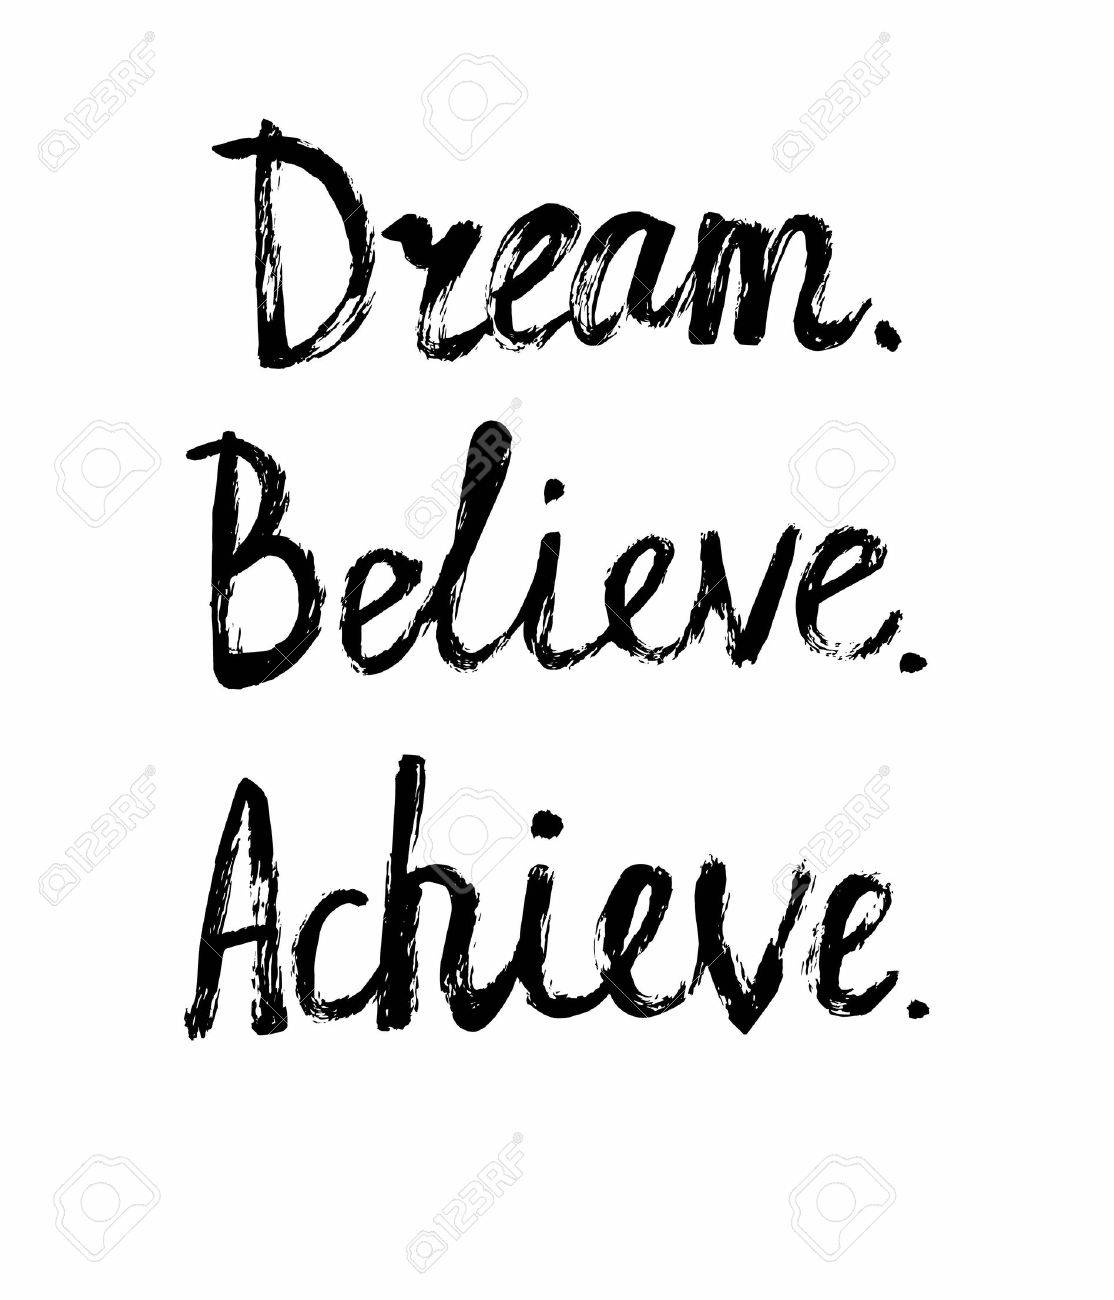 vector vector grunge illustration with handwritten words dream believe achieve motivational card and poster design with inscription made with brush pen